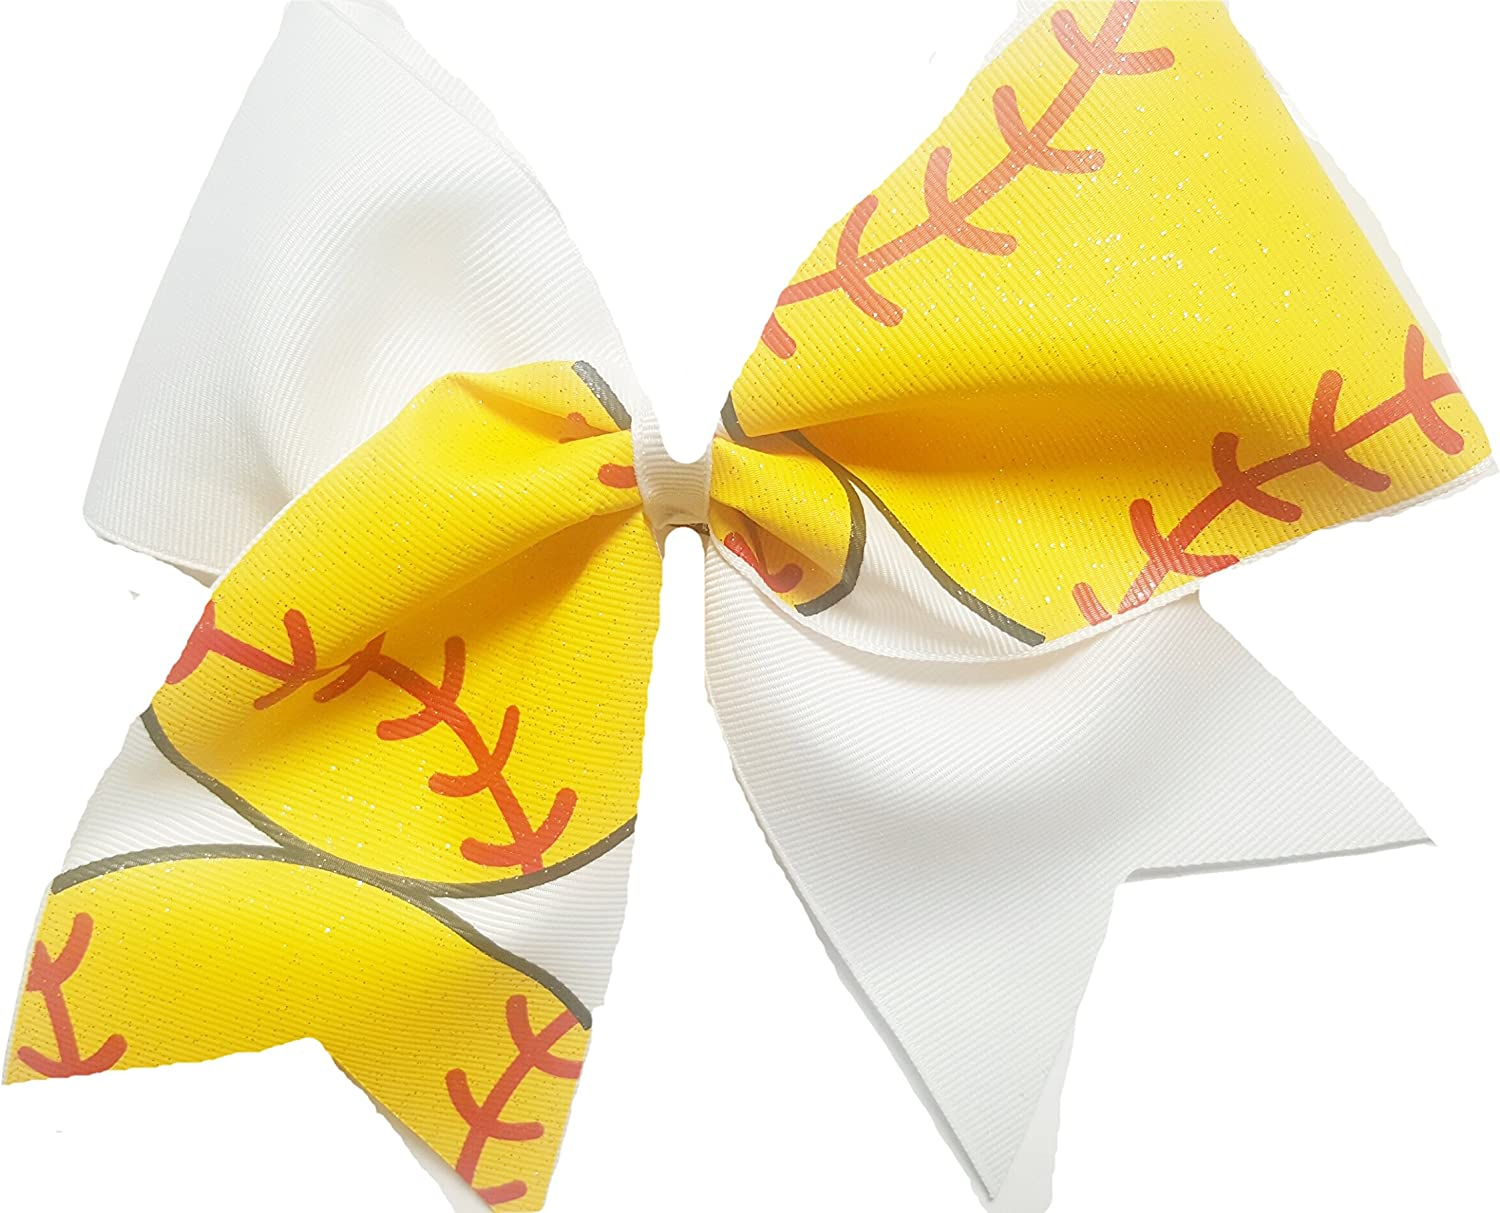 Softball Bow-Long Tail Bow Ombr\u00e9 yellow and gold Personalized Bow Cheer Bow Glitter and Non Glitter